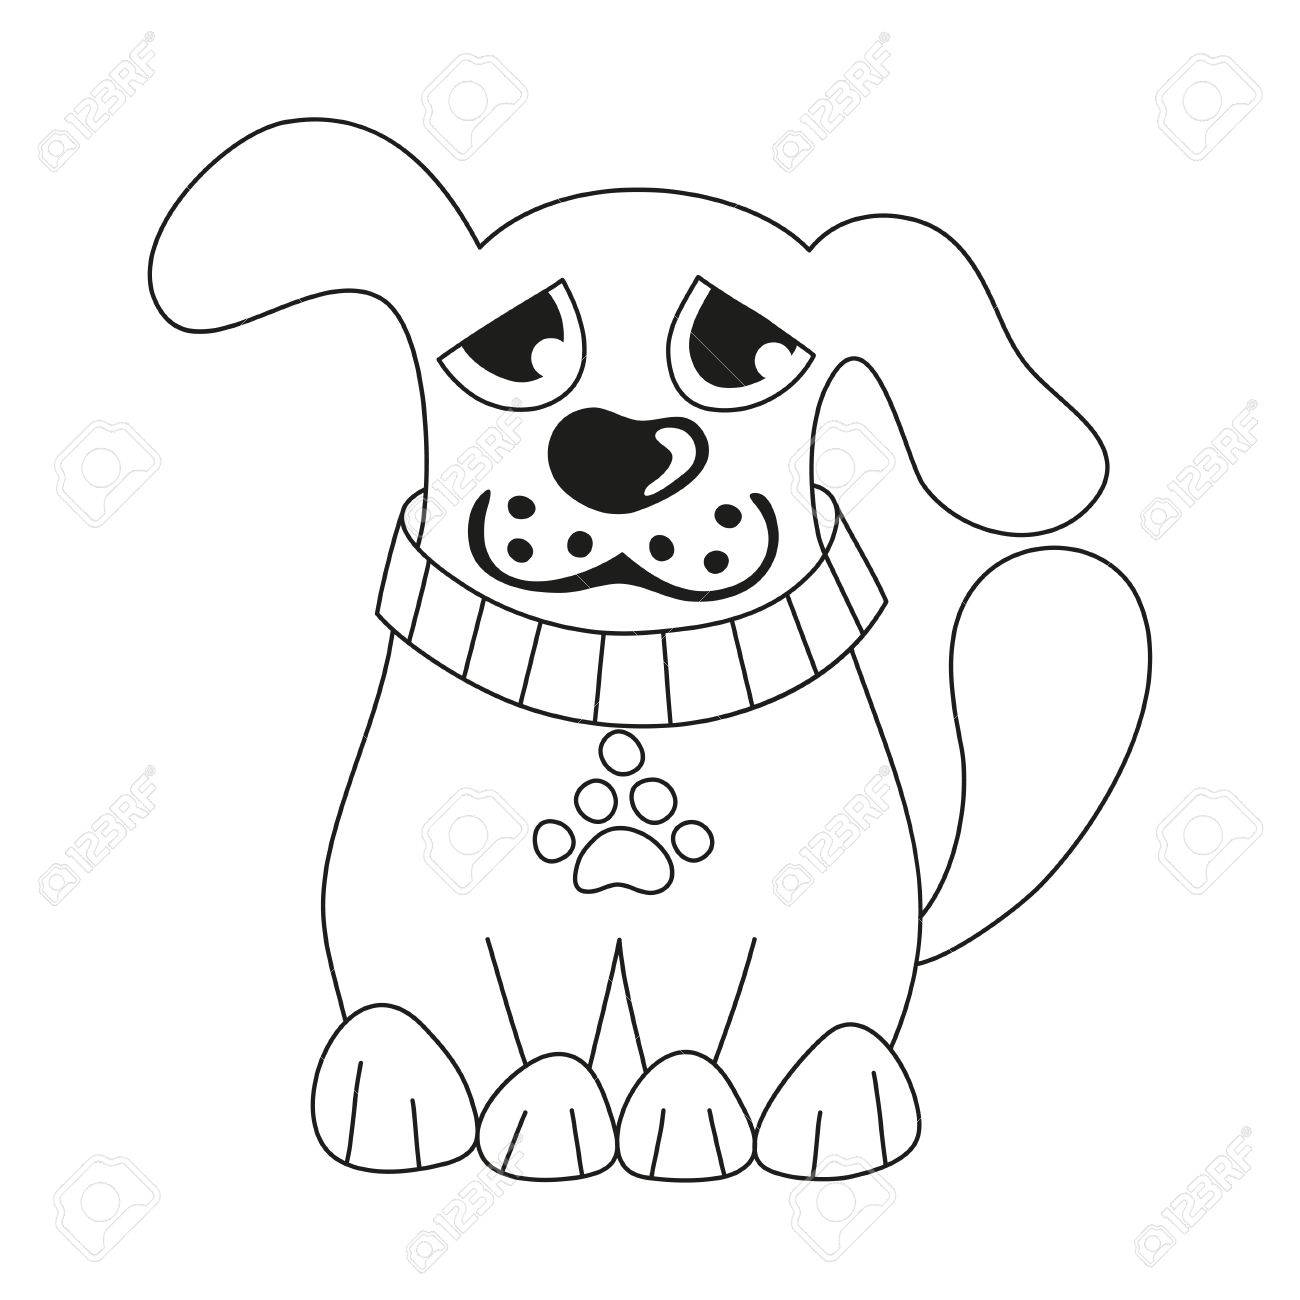 Sad Puppy Cartoon Free download best Sad Puppy Cartoon